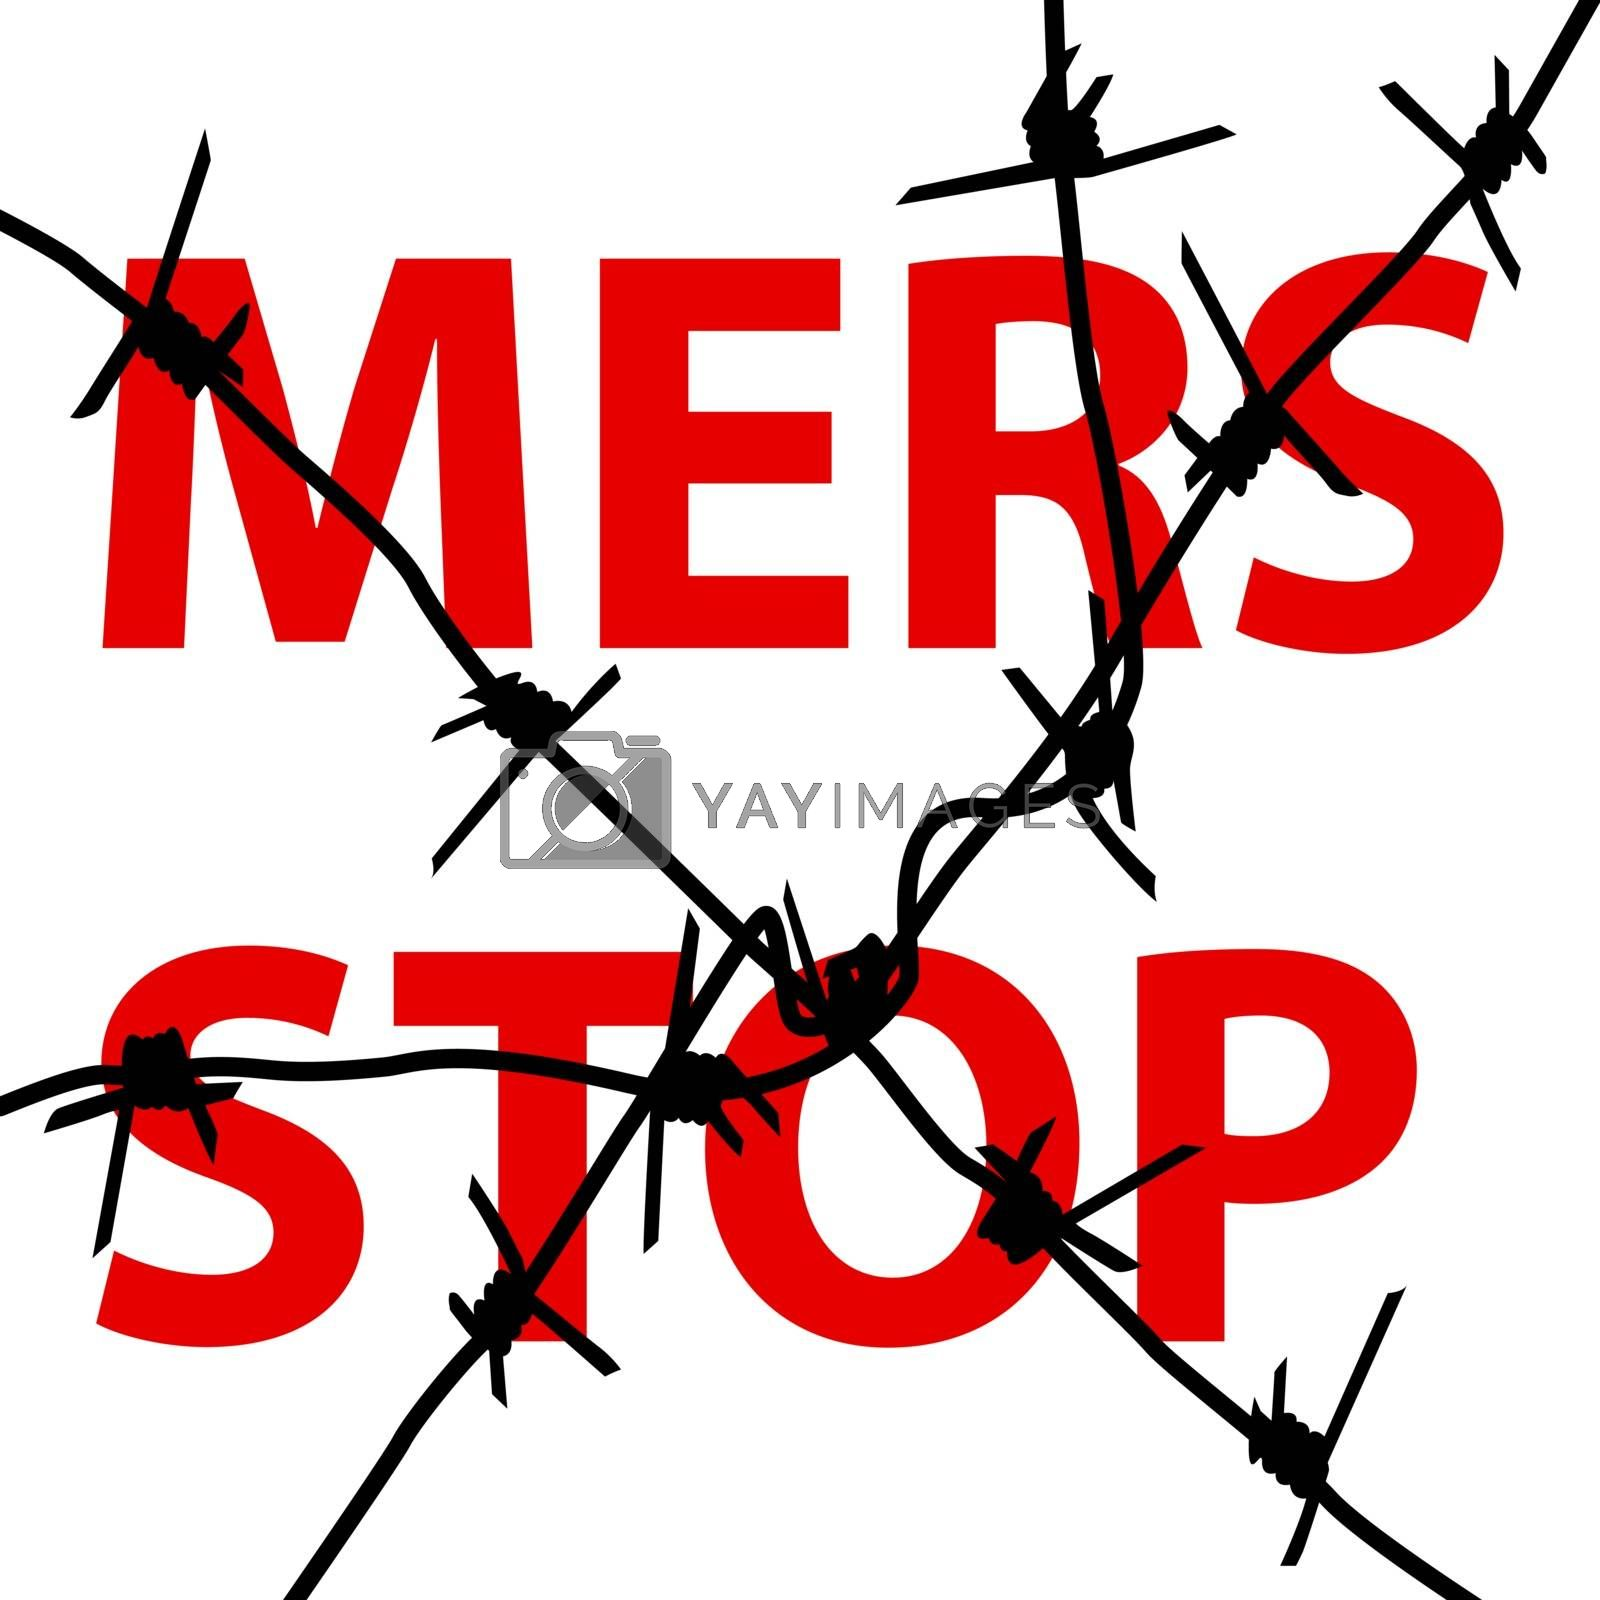 Background barbed wire Stop Mers Corona Virus sign.  Vector Illustration.